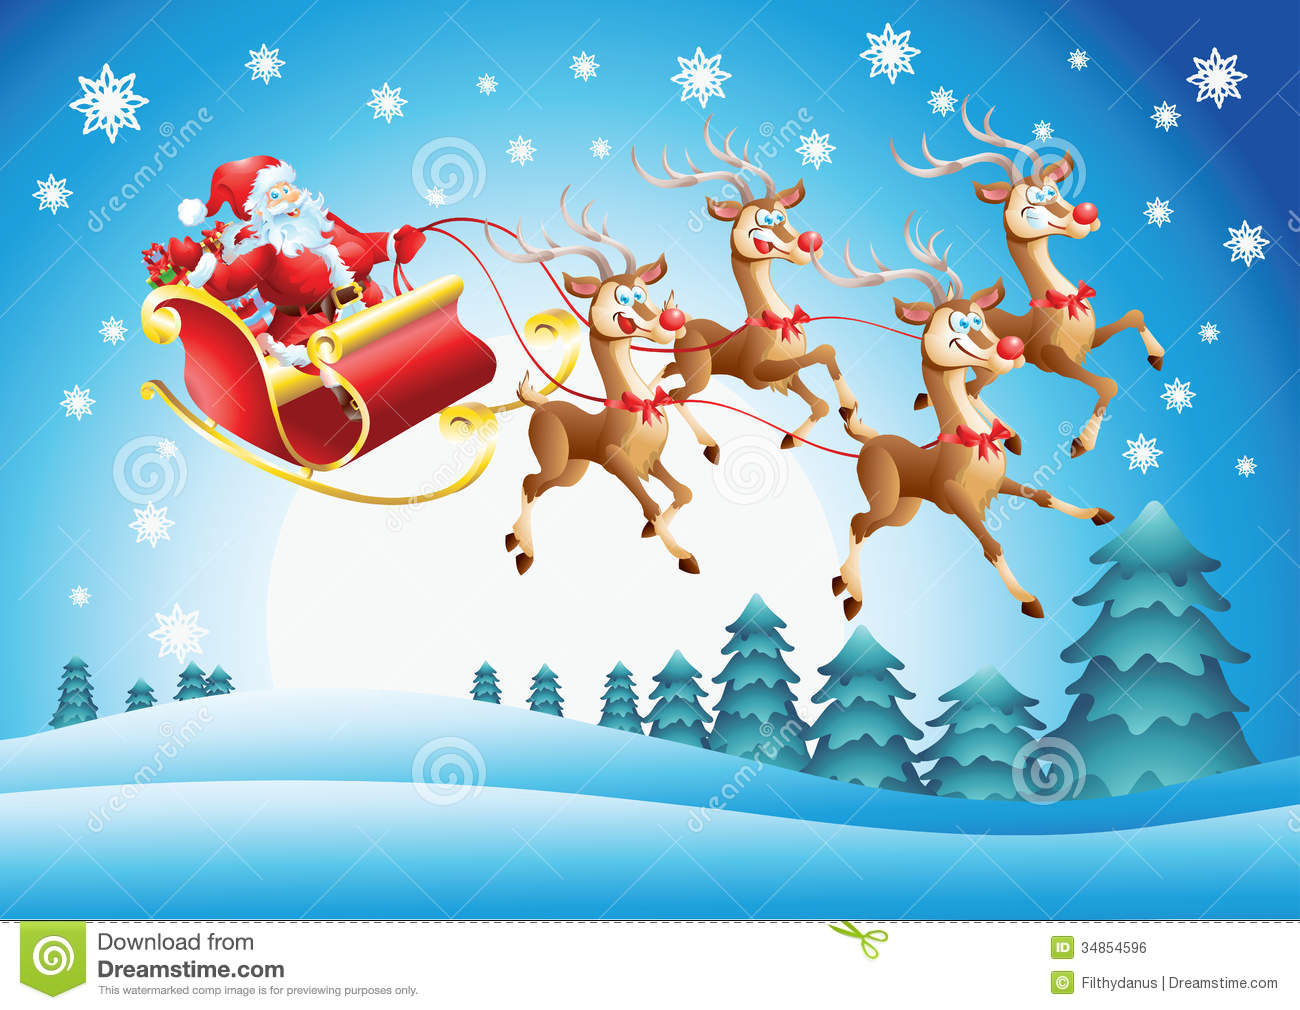 Santa Claus In His Sleigh Flying Royalty Free Stock Image - Image ...